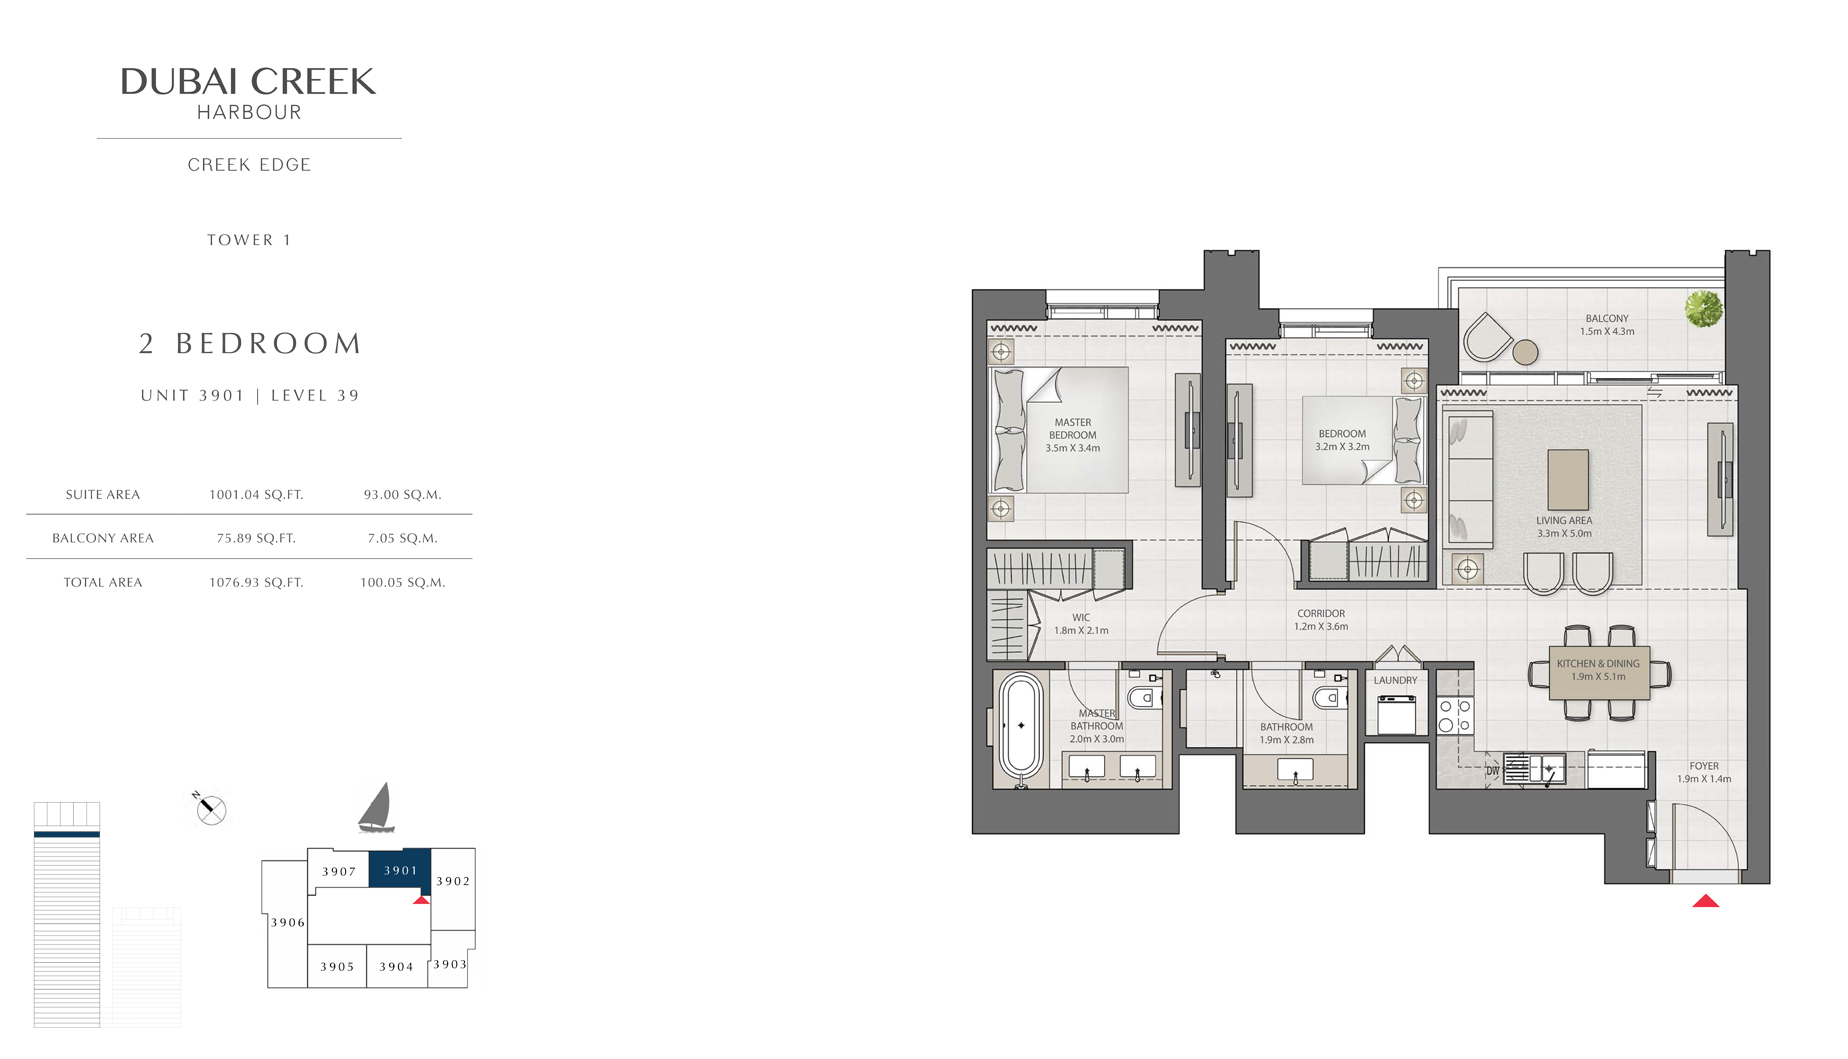 2 Bedroom Tower 1 Unit 3901 Level 39 Size 1076 sq.ft